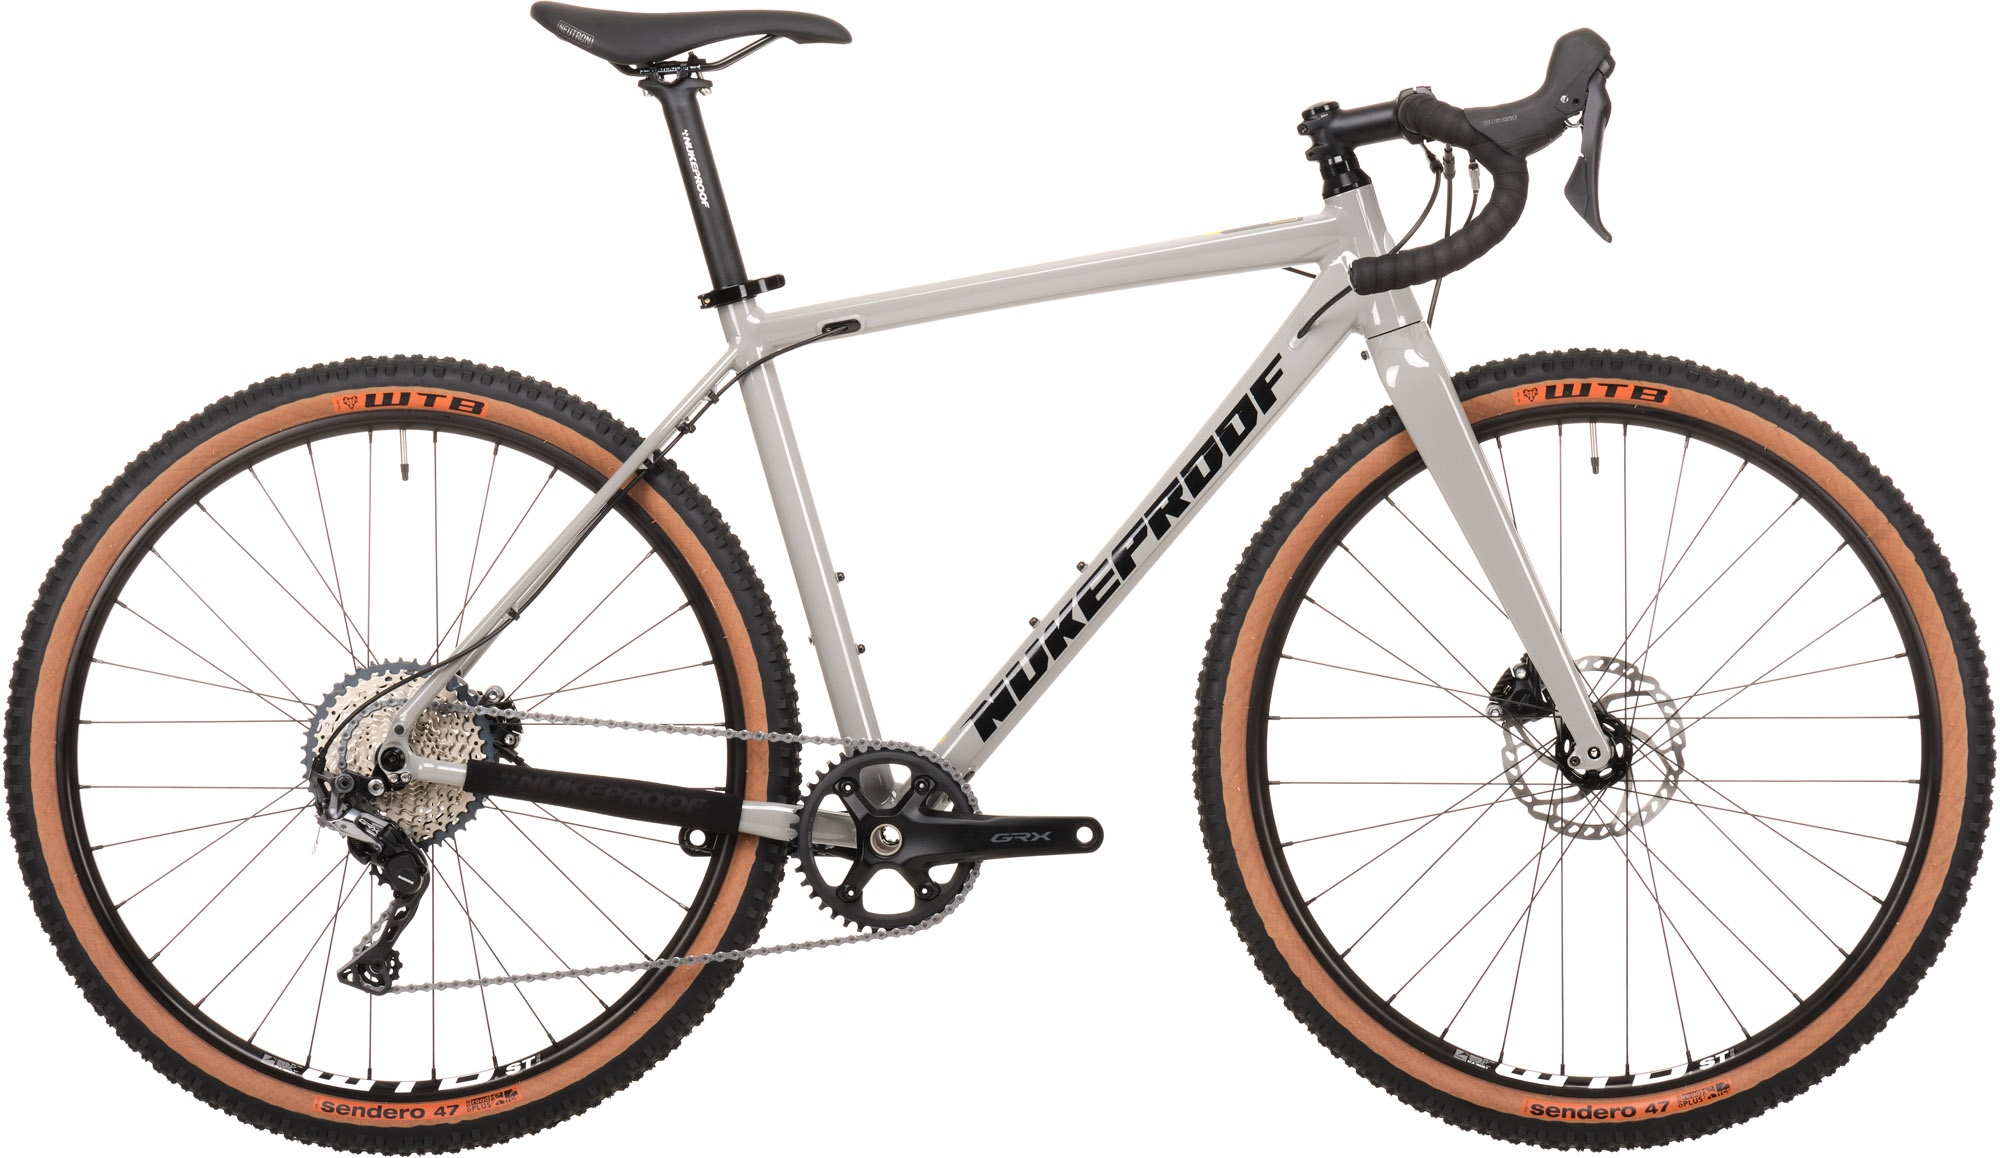 Nukeproof Digger 275 Grx 11 Speed Comp Adventure/gravel Bike 2021 Grey